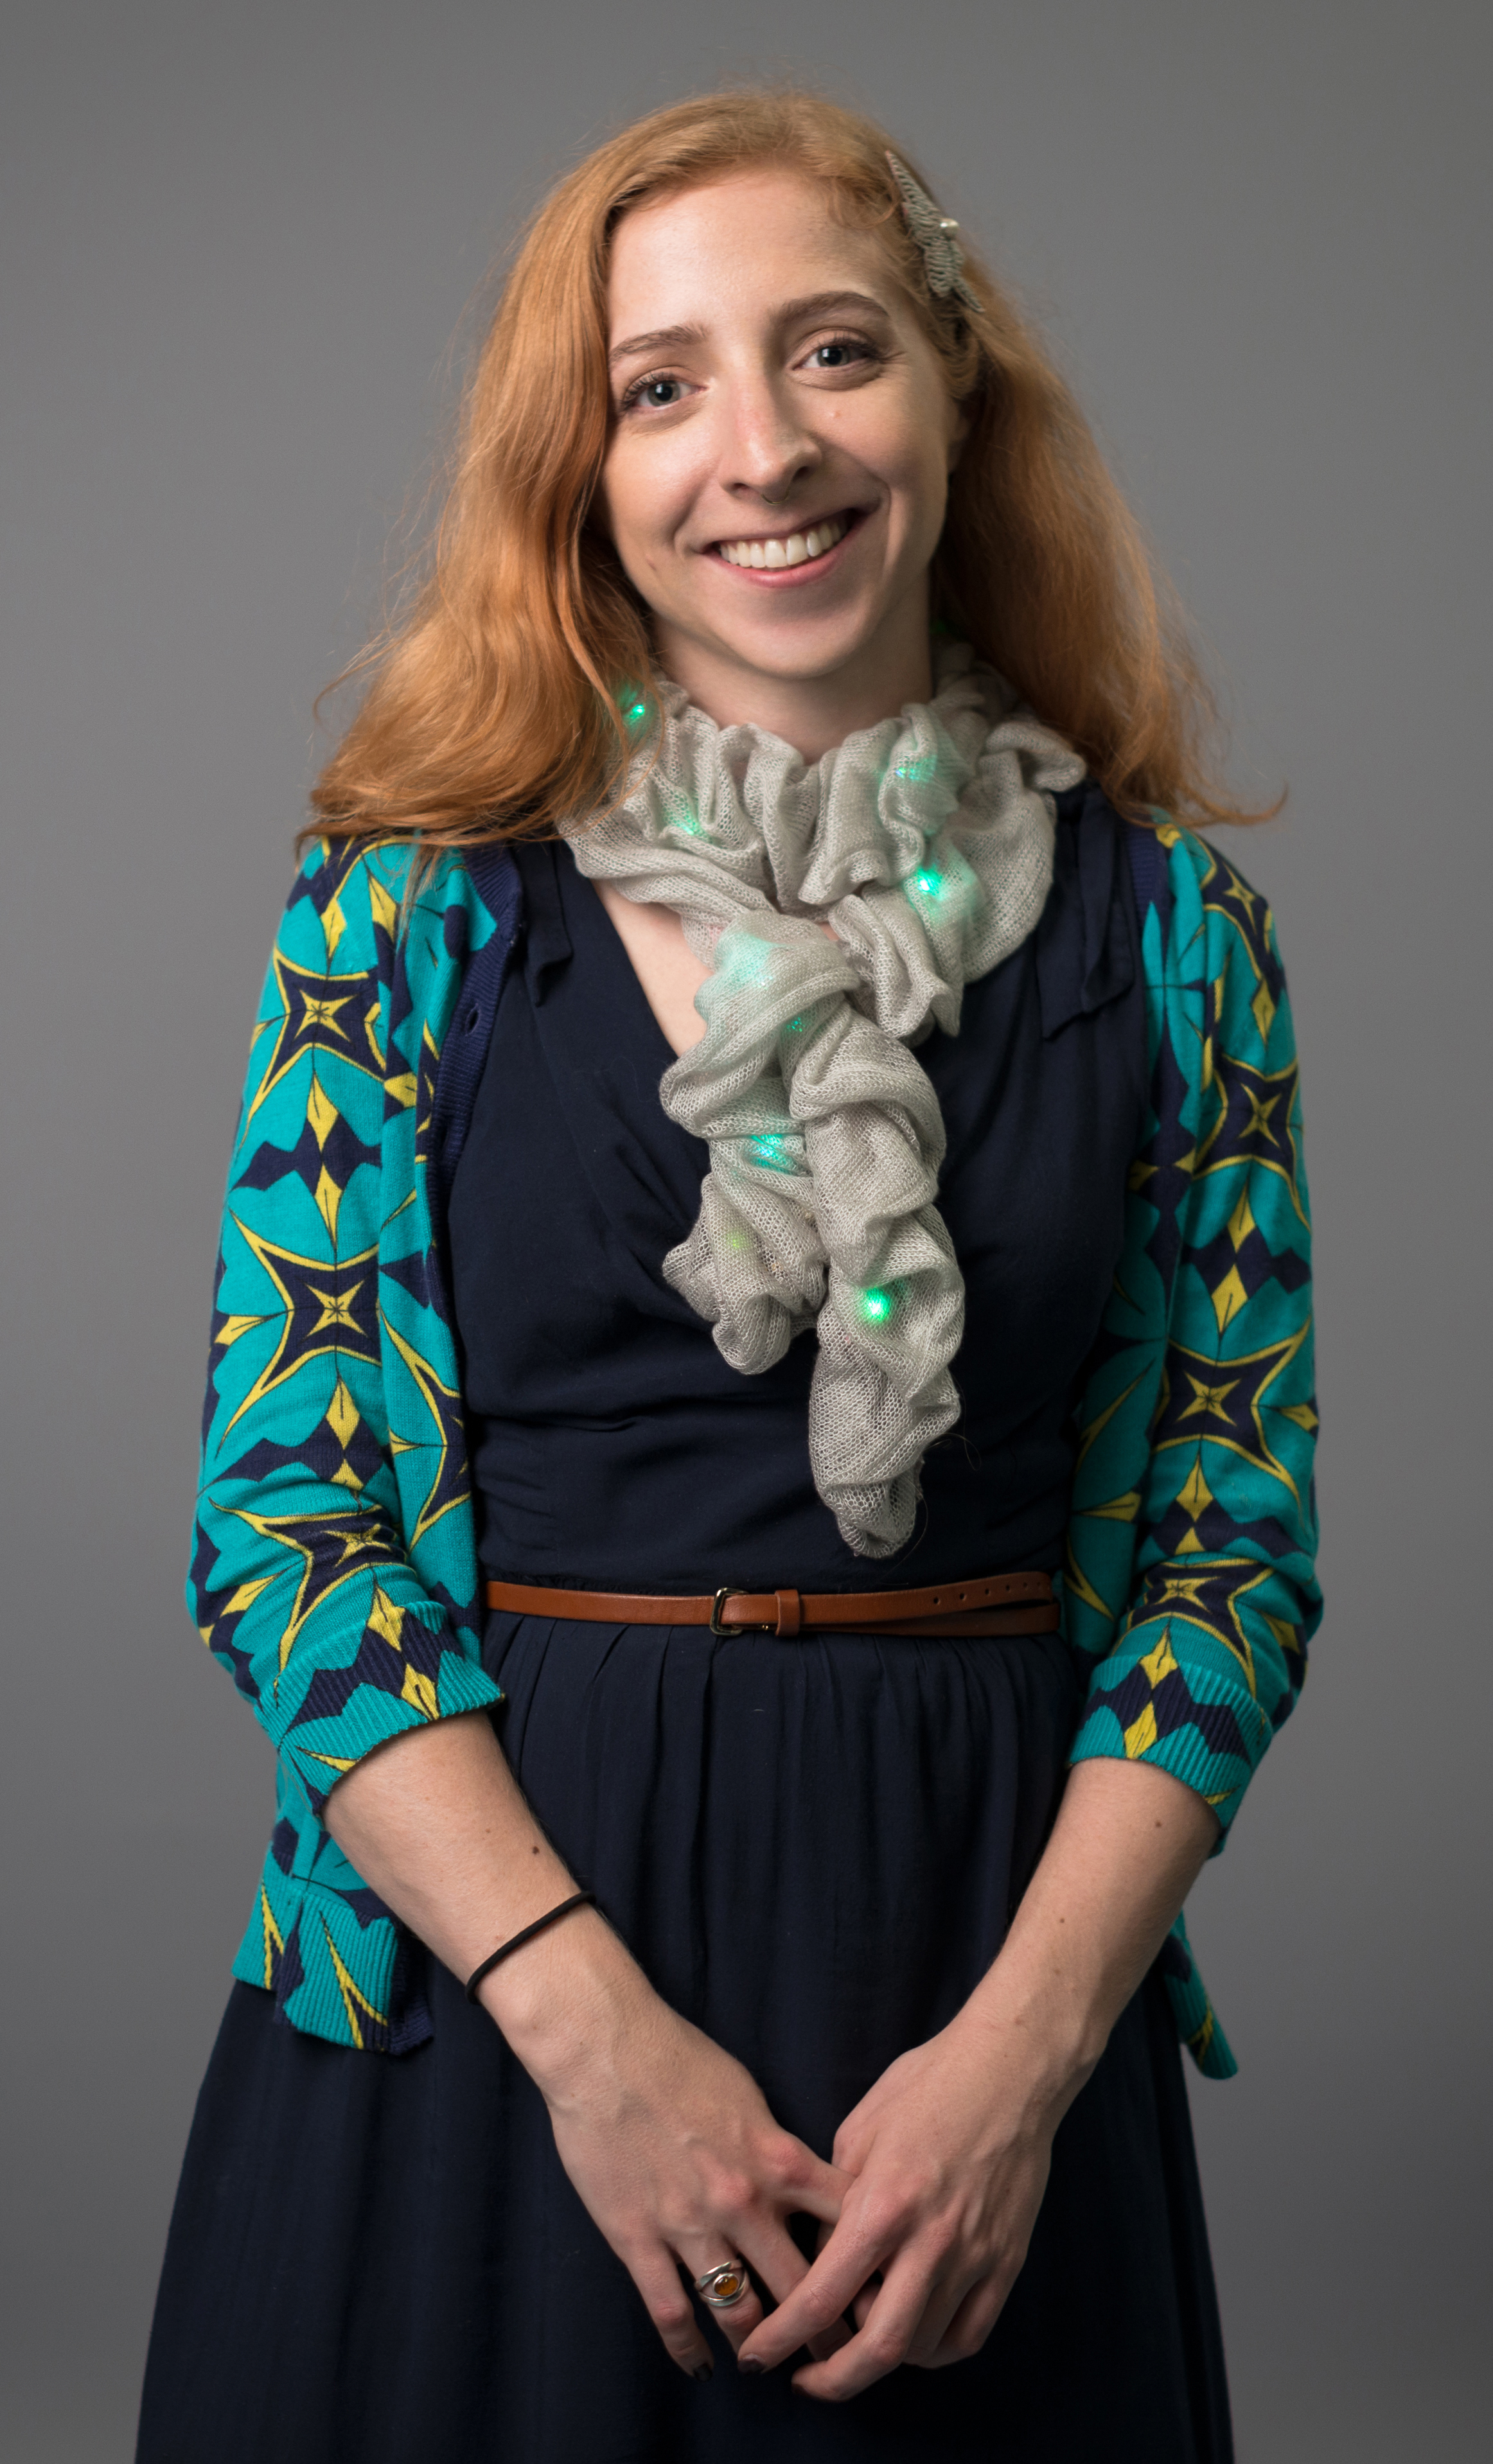 _color_sensing_flora_scarf___beckystern_retouched_by_risa.jpg